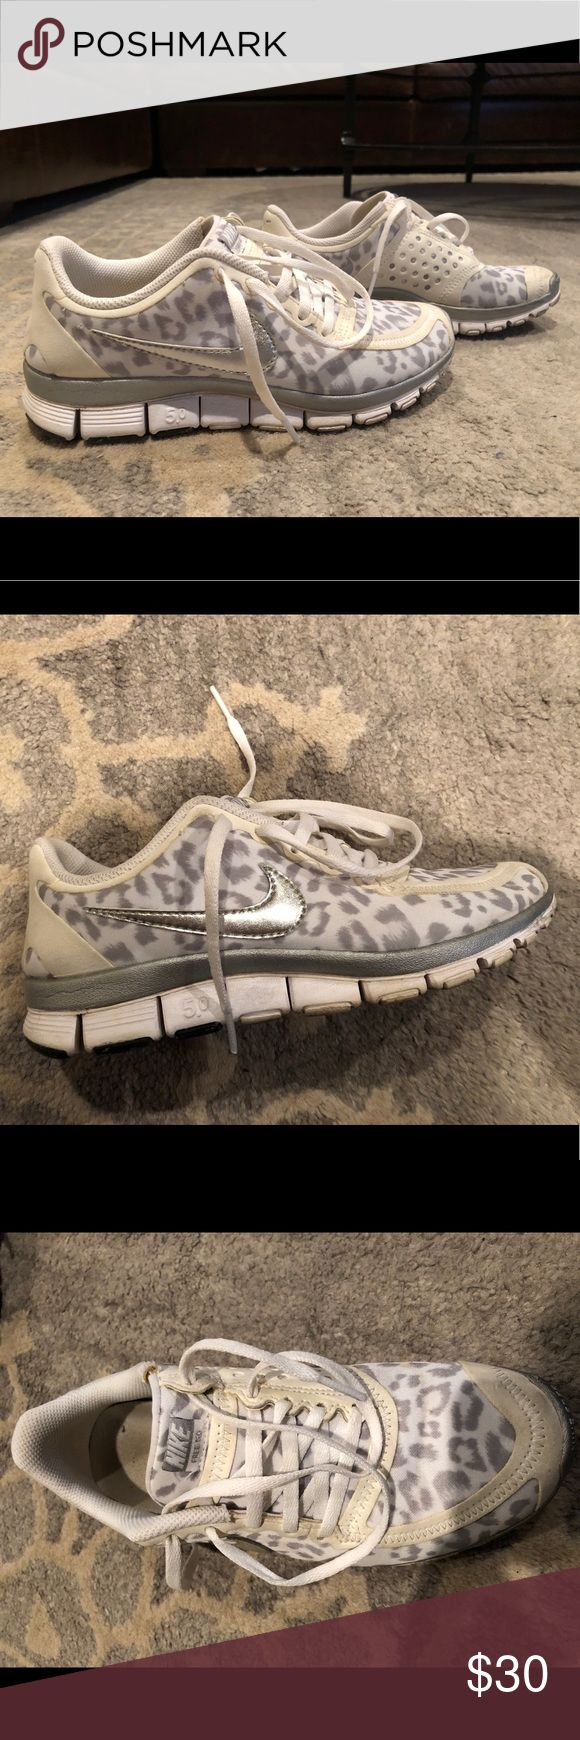 Nike Free Leopard 5.0 White, silver and grey leopard Nike's.... so cute!! Nike Shoes Athletic Shoes